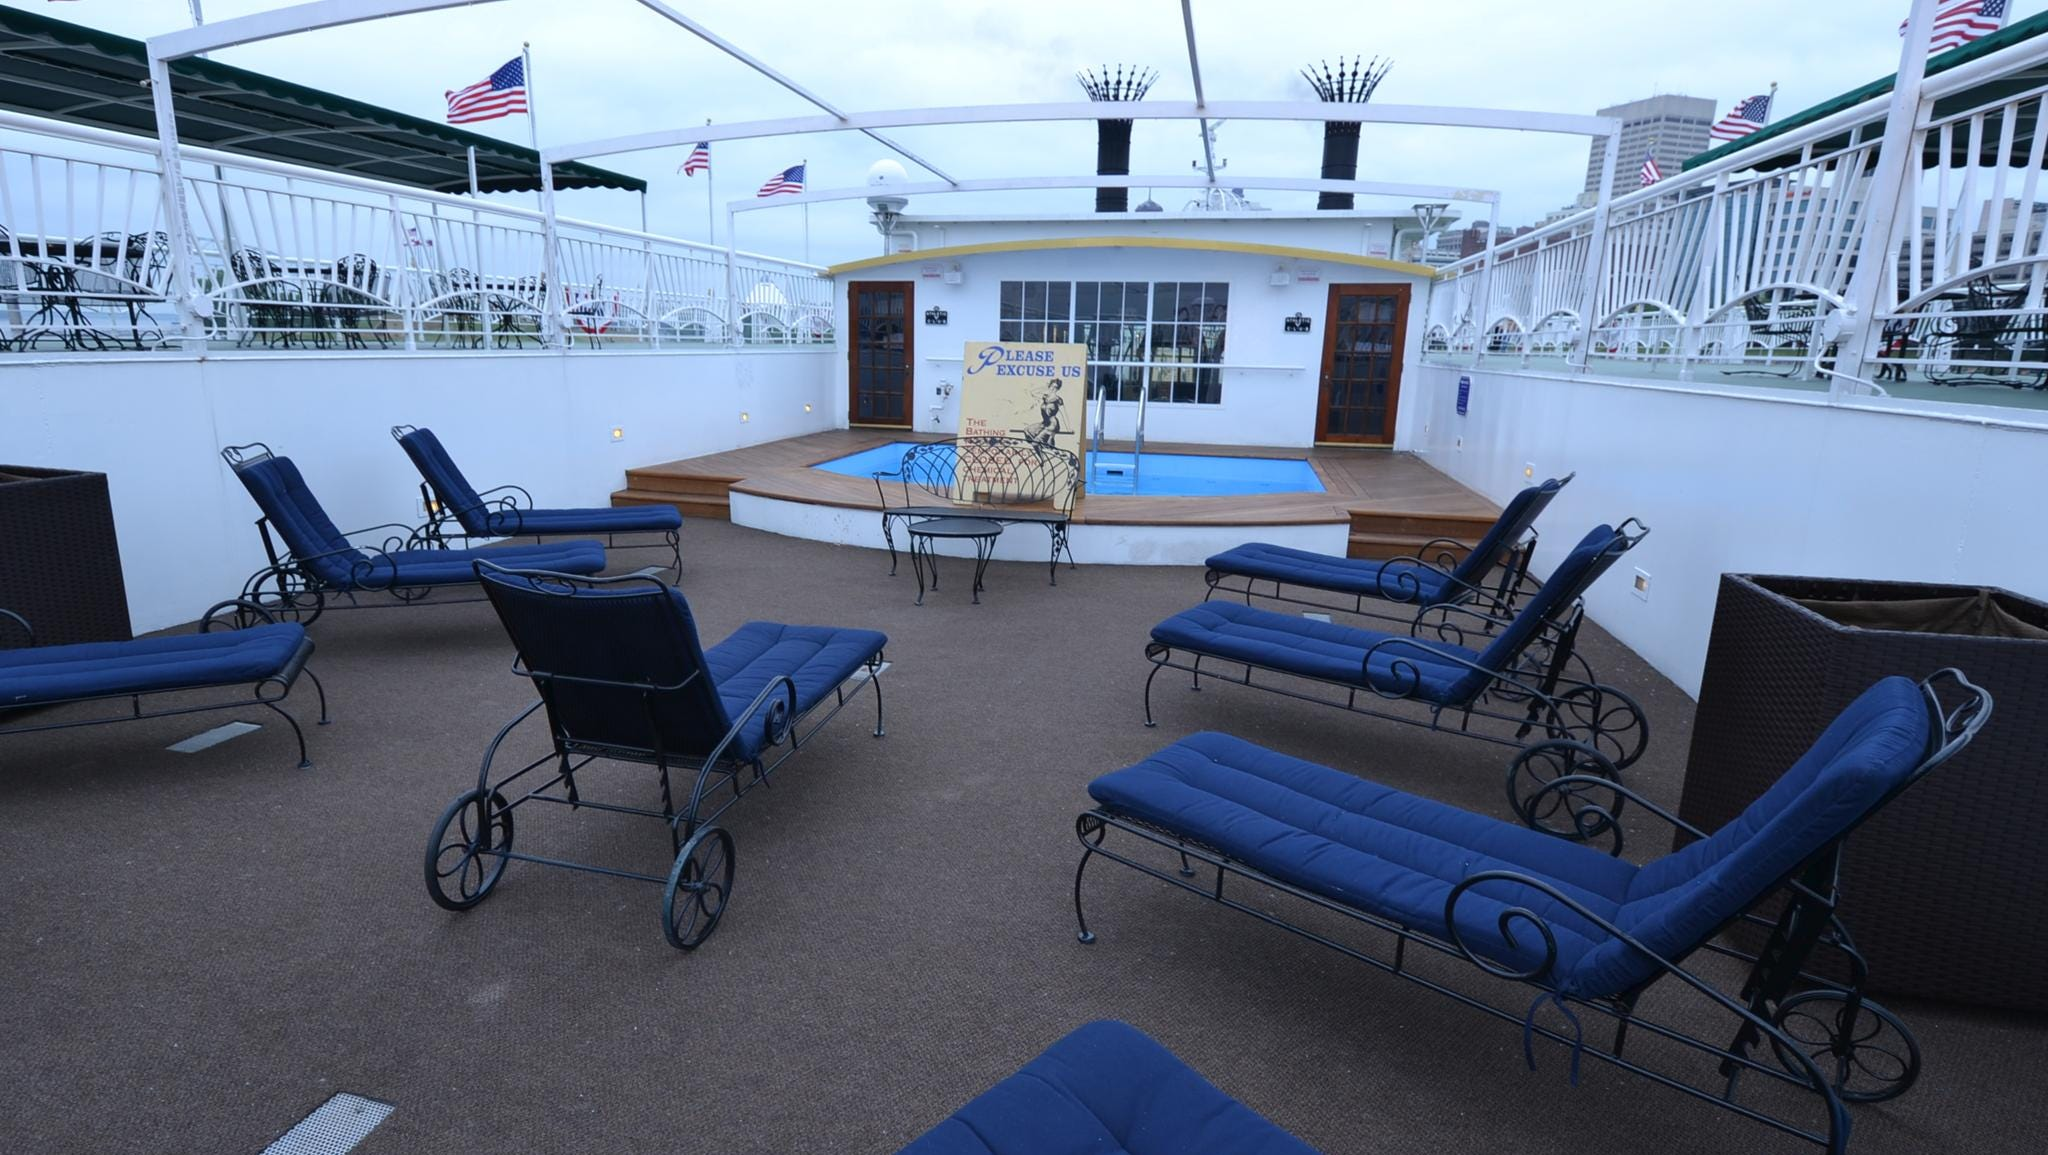 The American Queen features a small pool area, a rarity on river vessels.